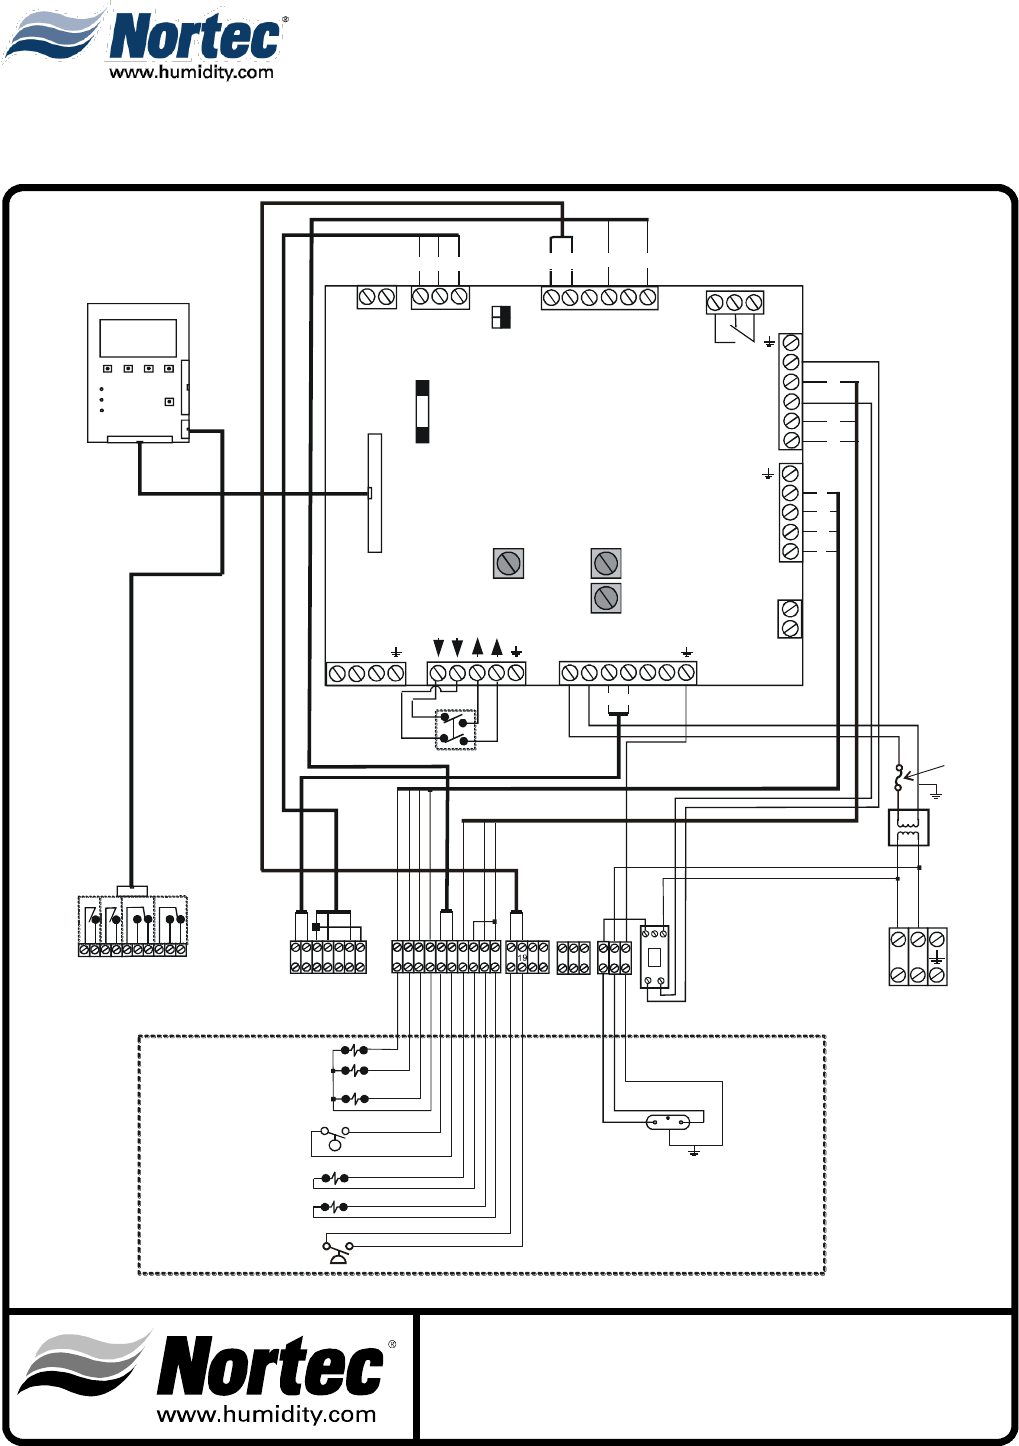 Wiring Diagram For A Standard Horizon Vhf Radio Bgmt Data Raymarine Radar Yaesu Mh 48 Lighting Diagrams